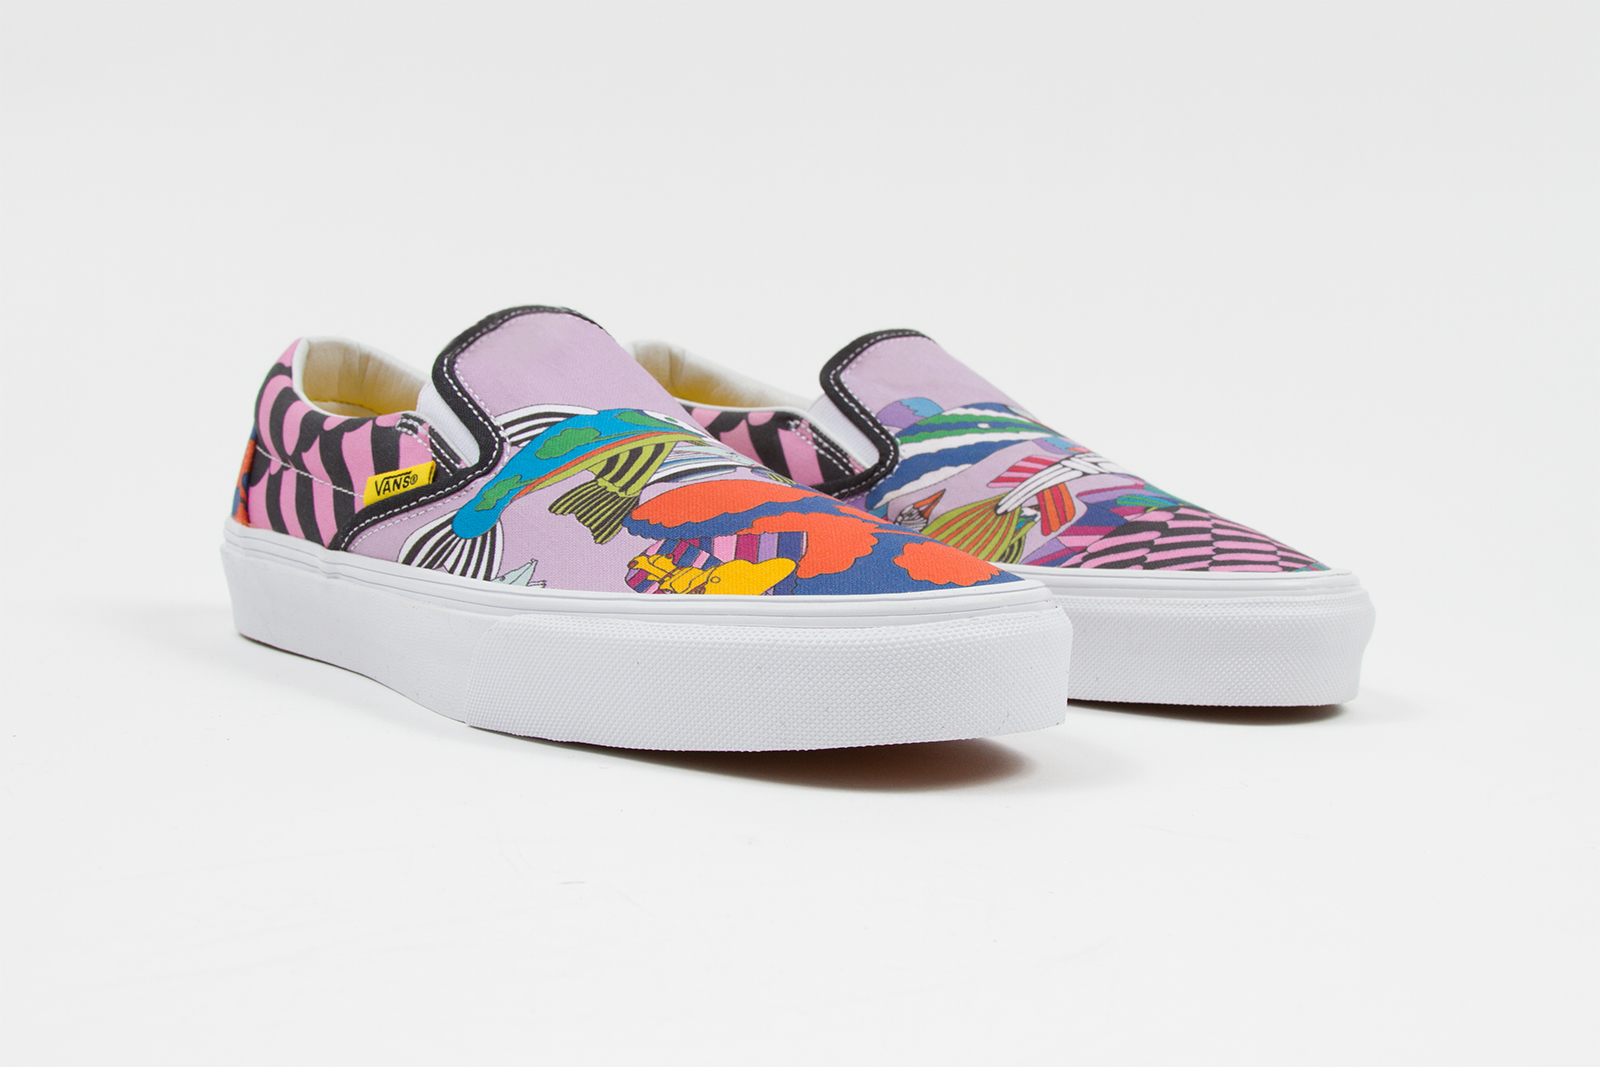 43ef1ca1b4 The Beatles x Vans Yellow Submarine Capsule Collection releases March 1